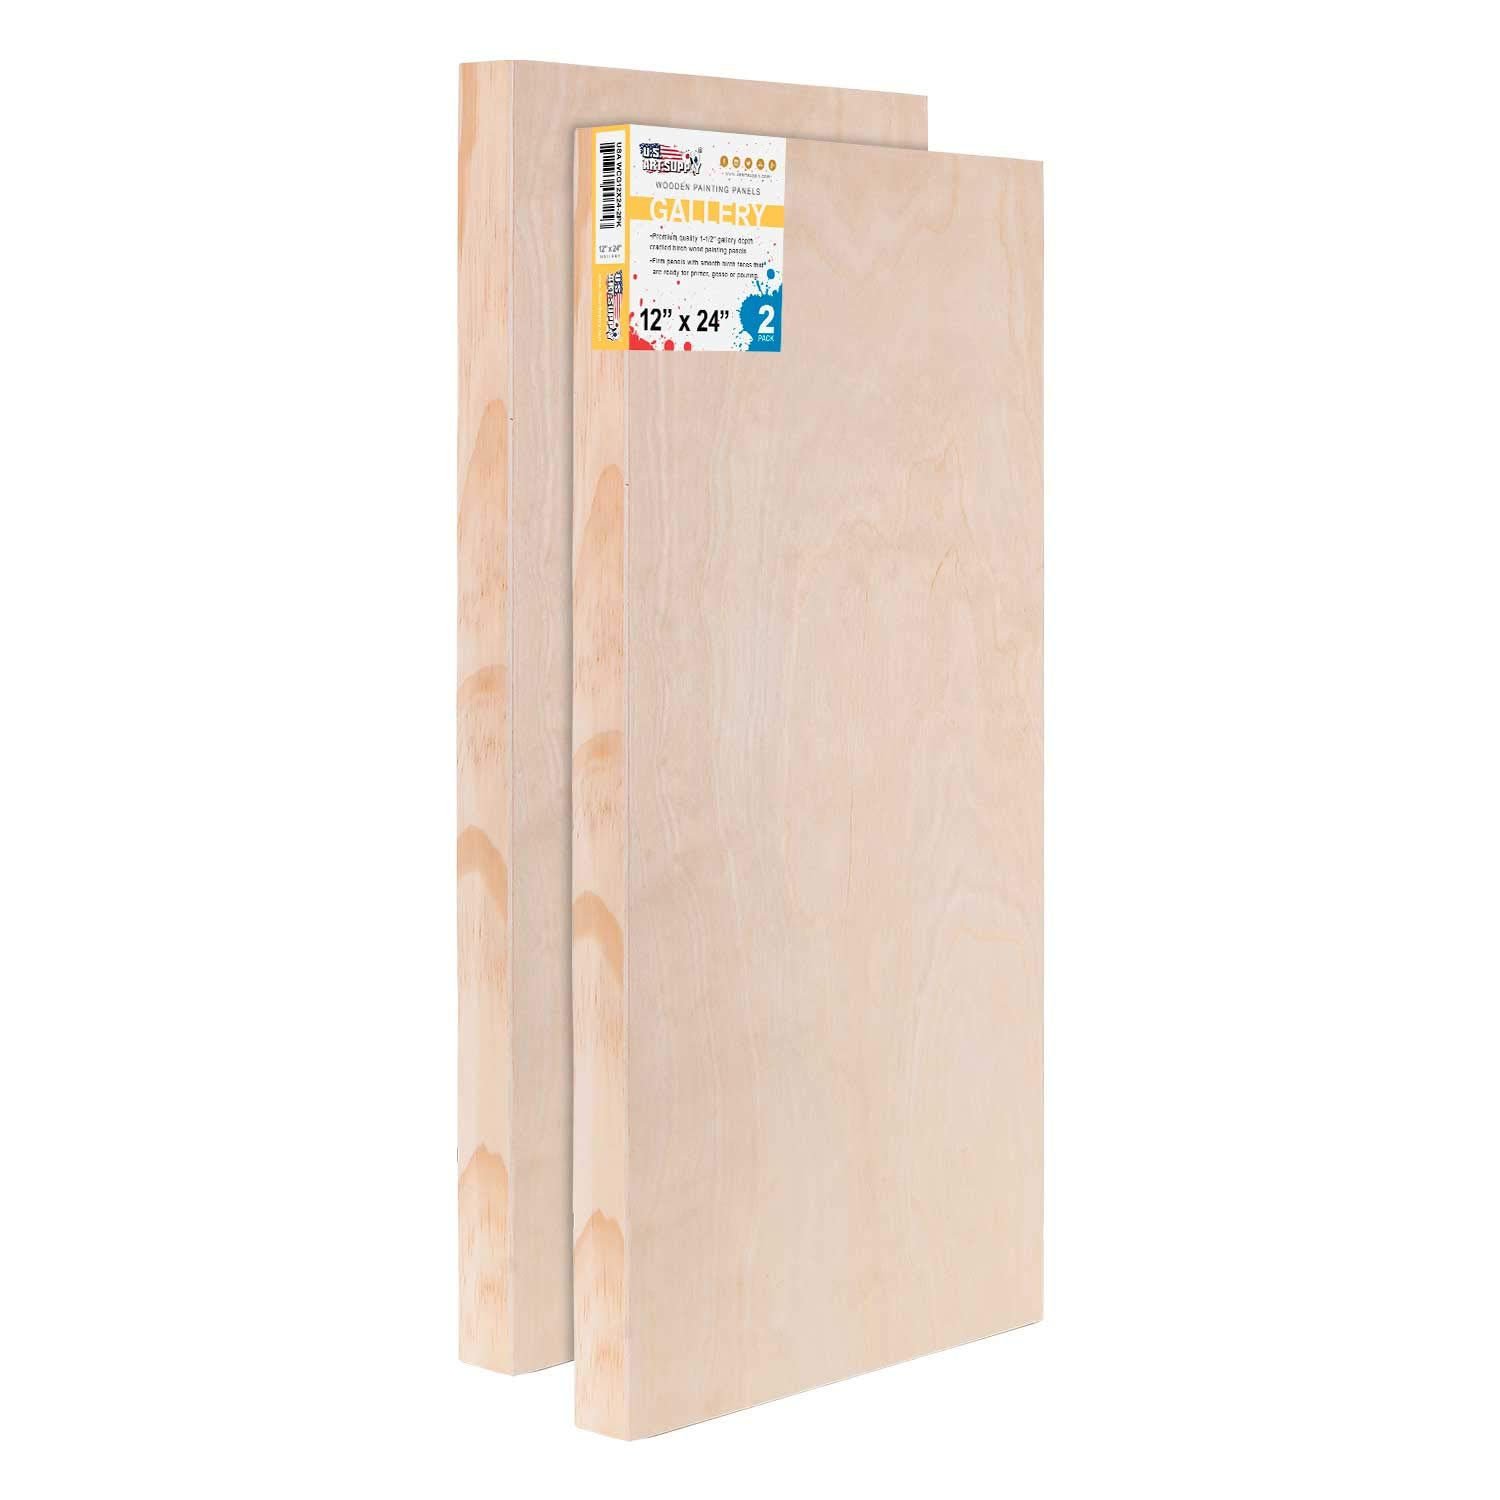 U.S. Art Supply 12'' x 24'' Birch Wood Paint Pouring Panel Boards, Gallery 1-1/2'' Deep Cradle (Pack of 2) - Artist Depth Wooden Wall Canvases - Painting Mixed-Media Craft, Acrylic, Oil, Encaustic